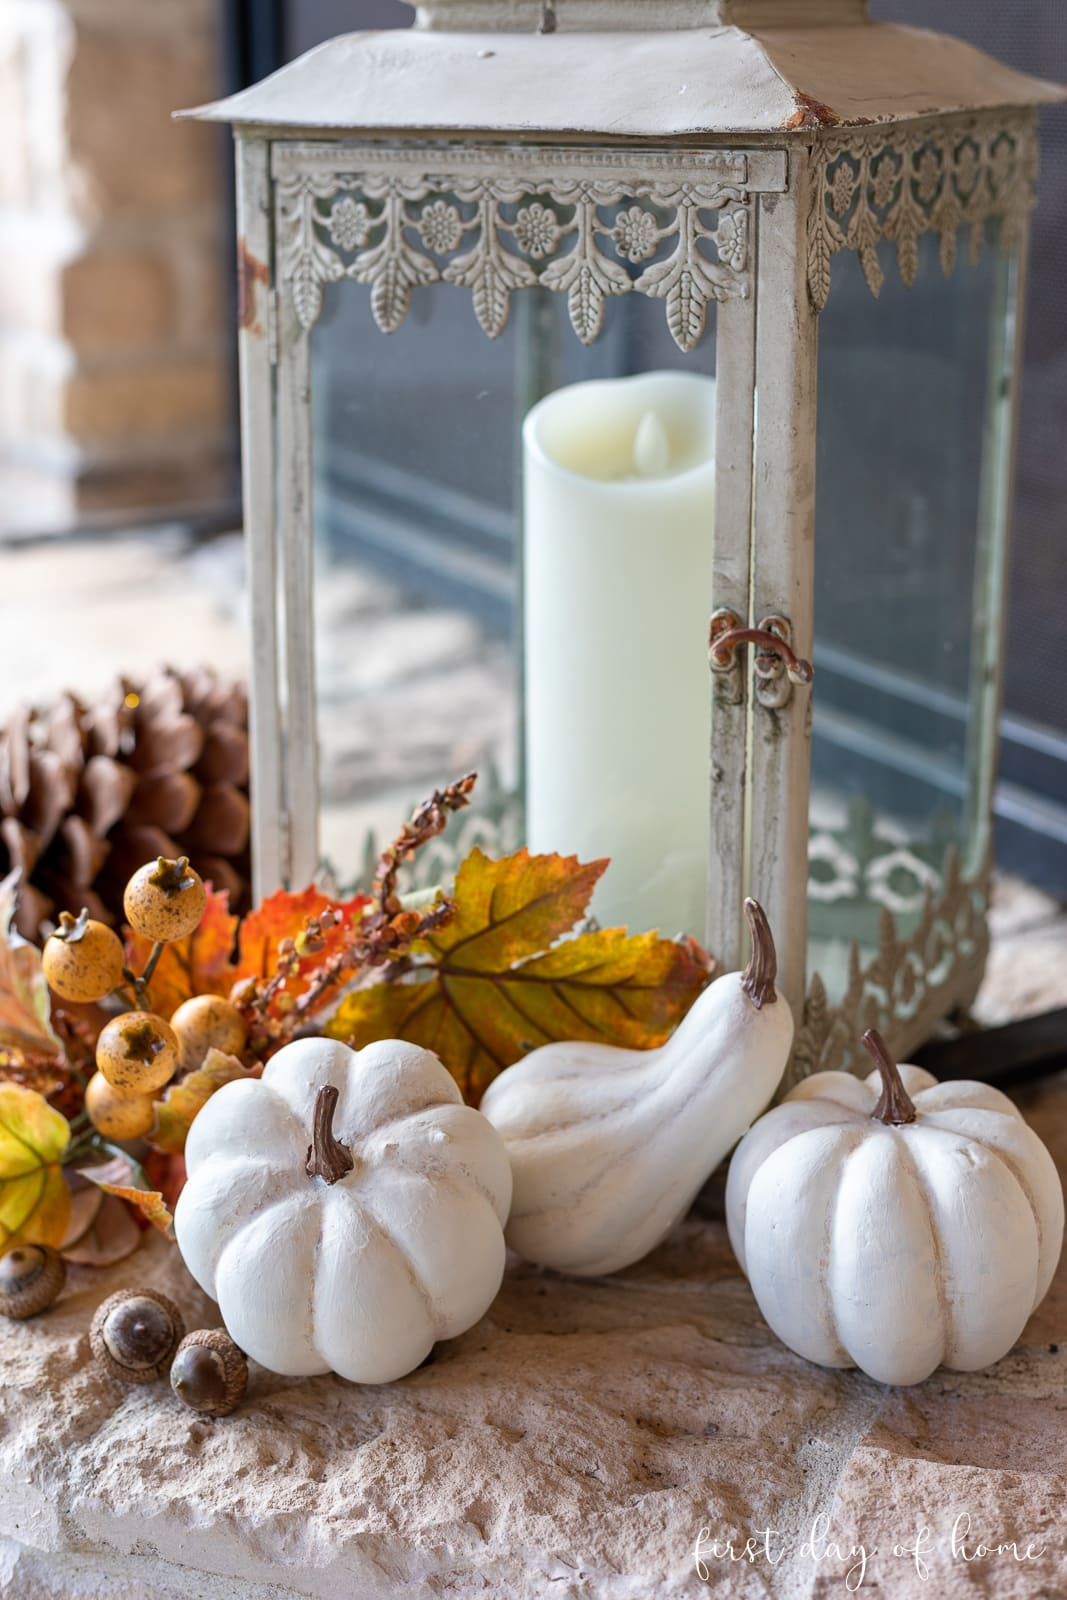 White painted pumpkins by lantern with fall leaves and pinecones